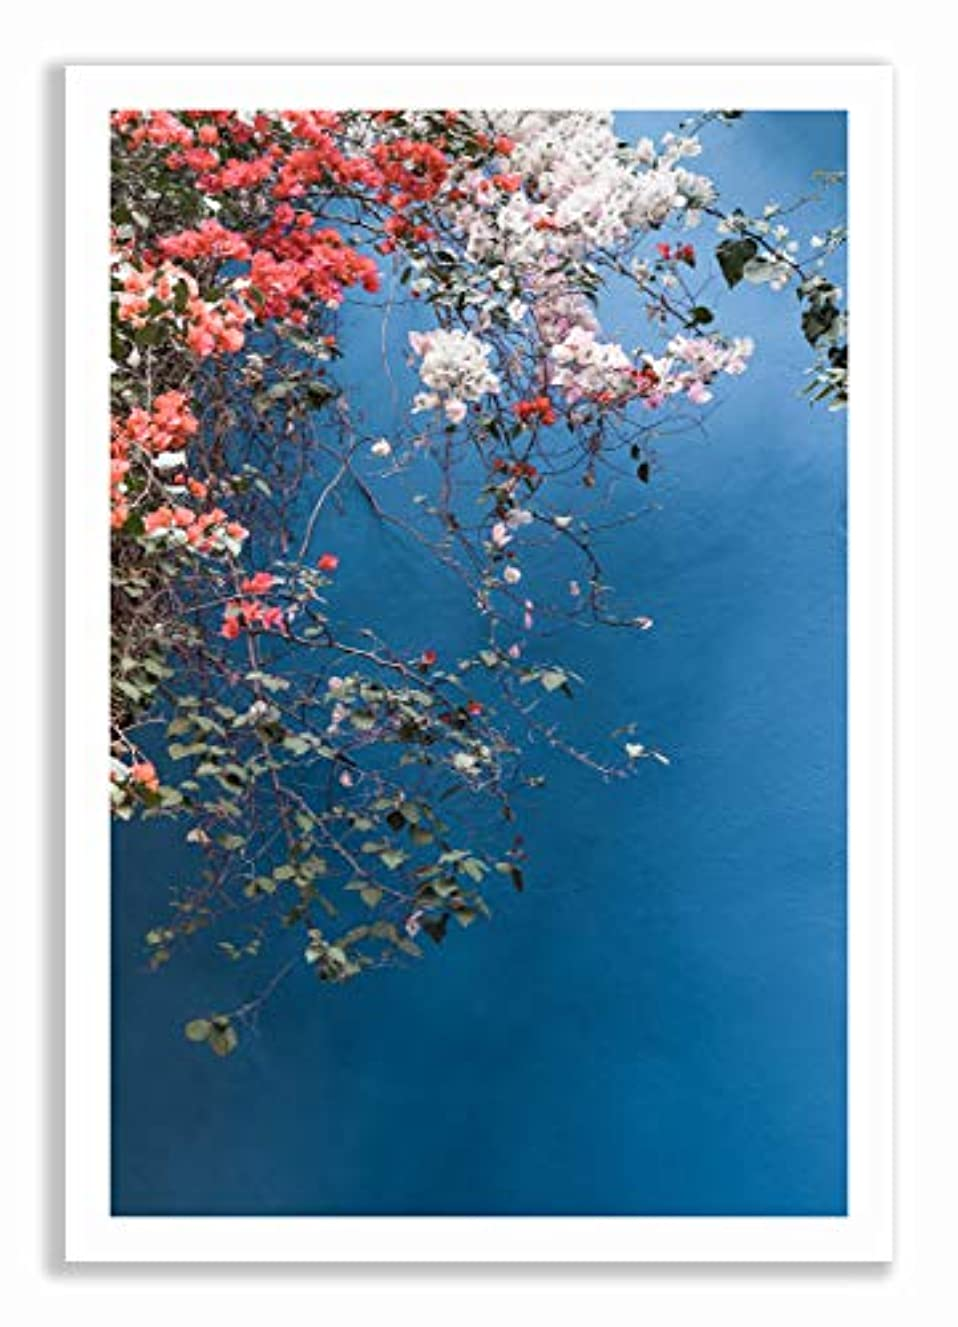 Bougainvillea 2 White Lacquer Wooden Frame with Mount, Multicolored, 40x60